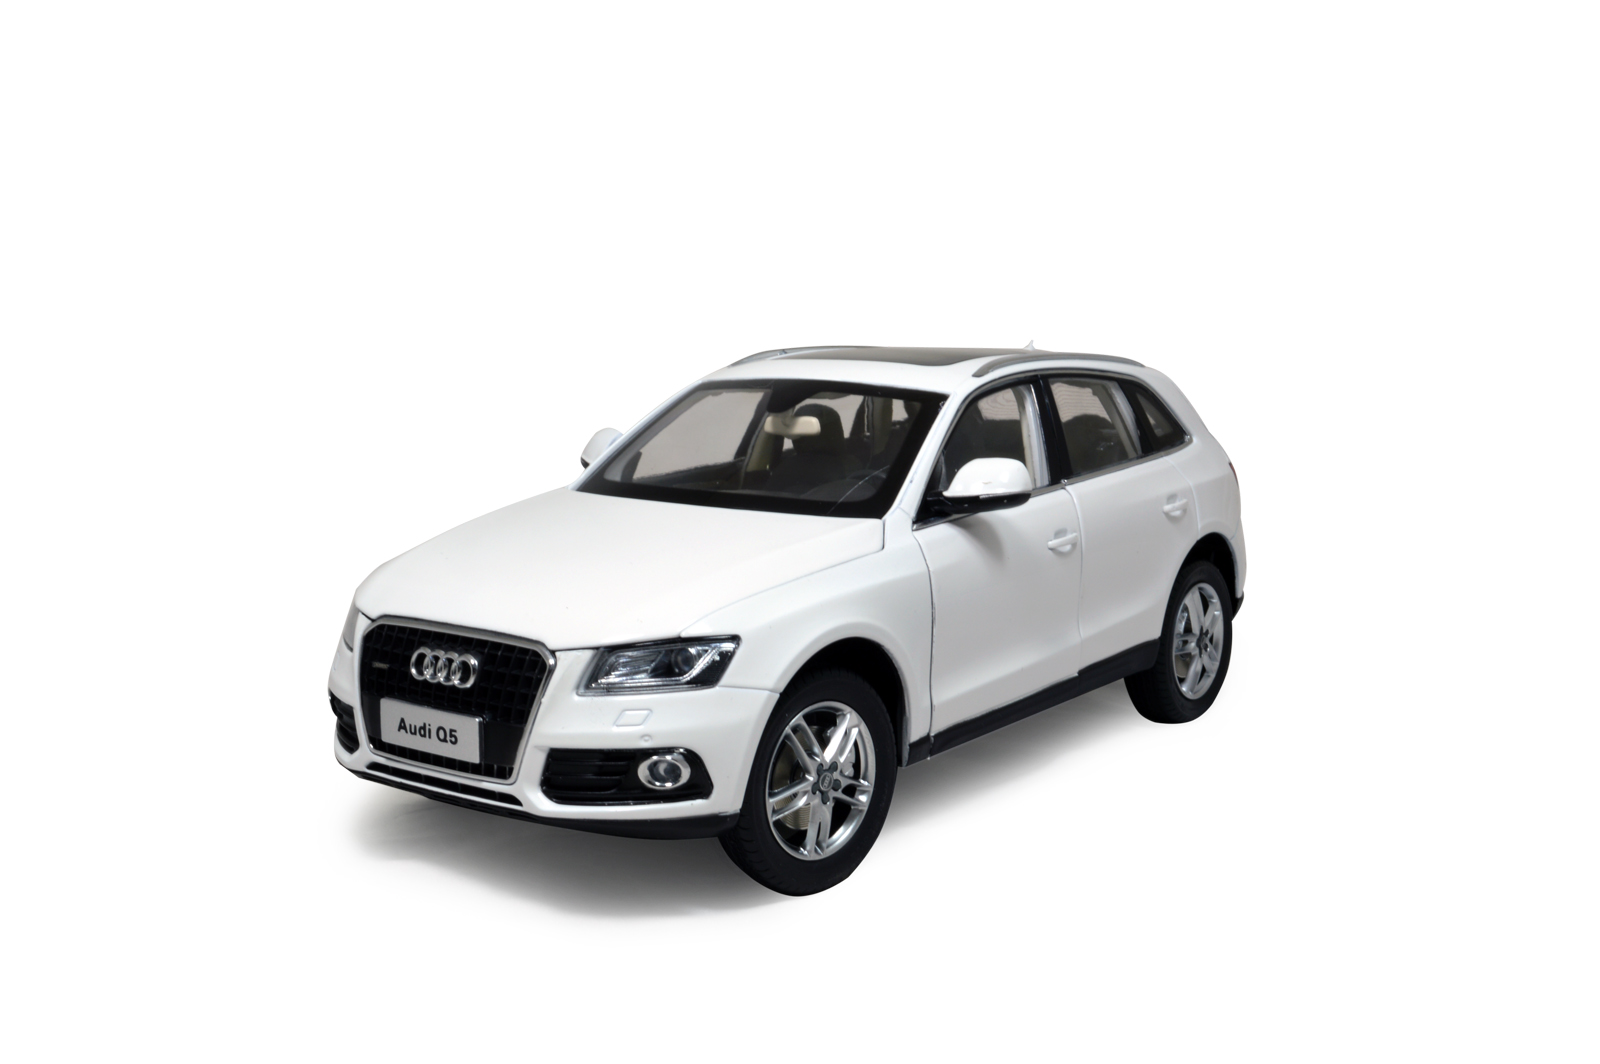 2016 Audi Q5 >> Audi Q5 2014 1/18 Scale Diecast Model Car Wholesale - Paudi Model